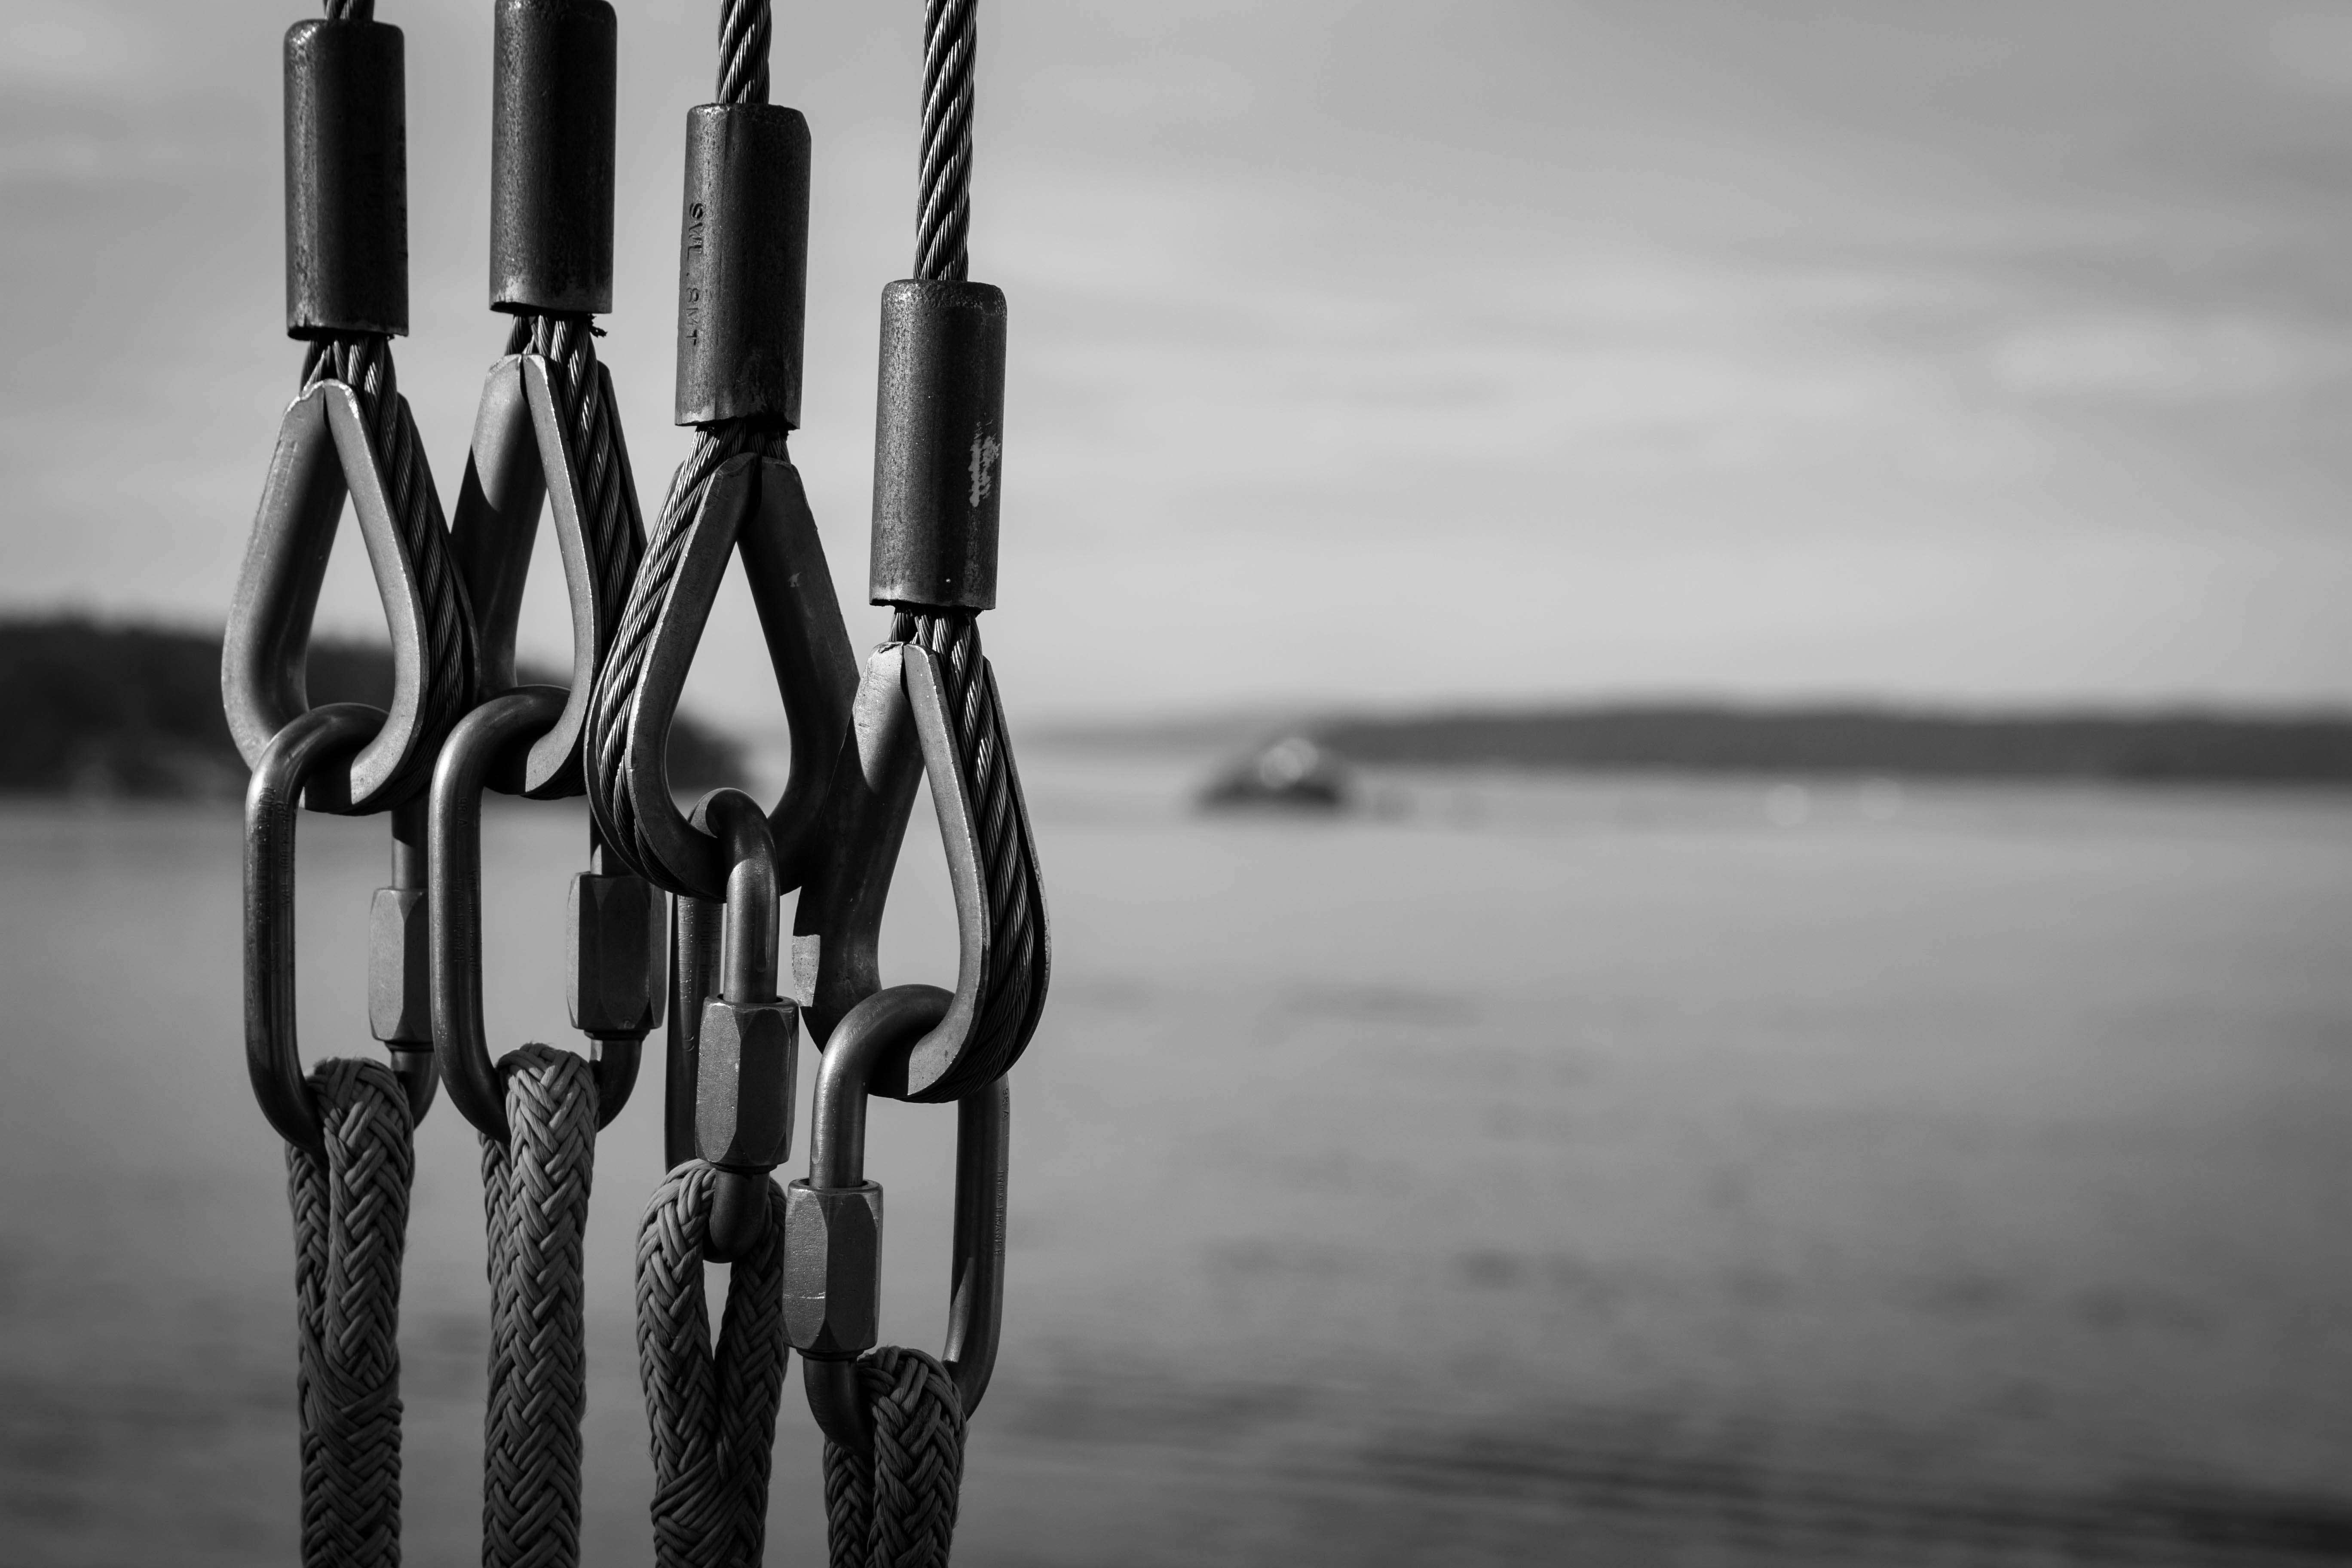 Black and White Photography of Chains